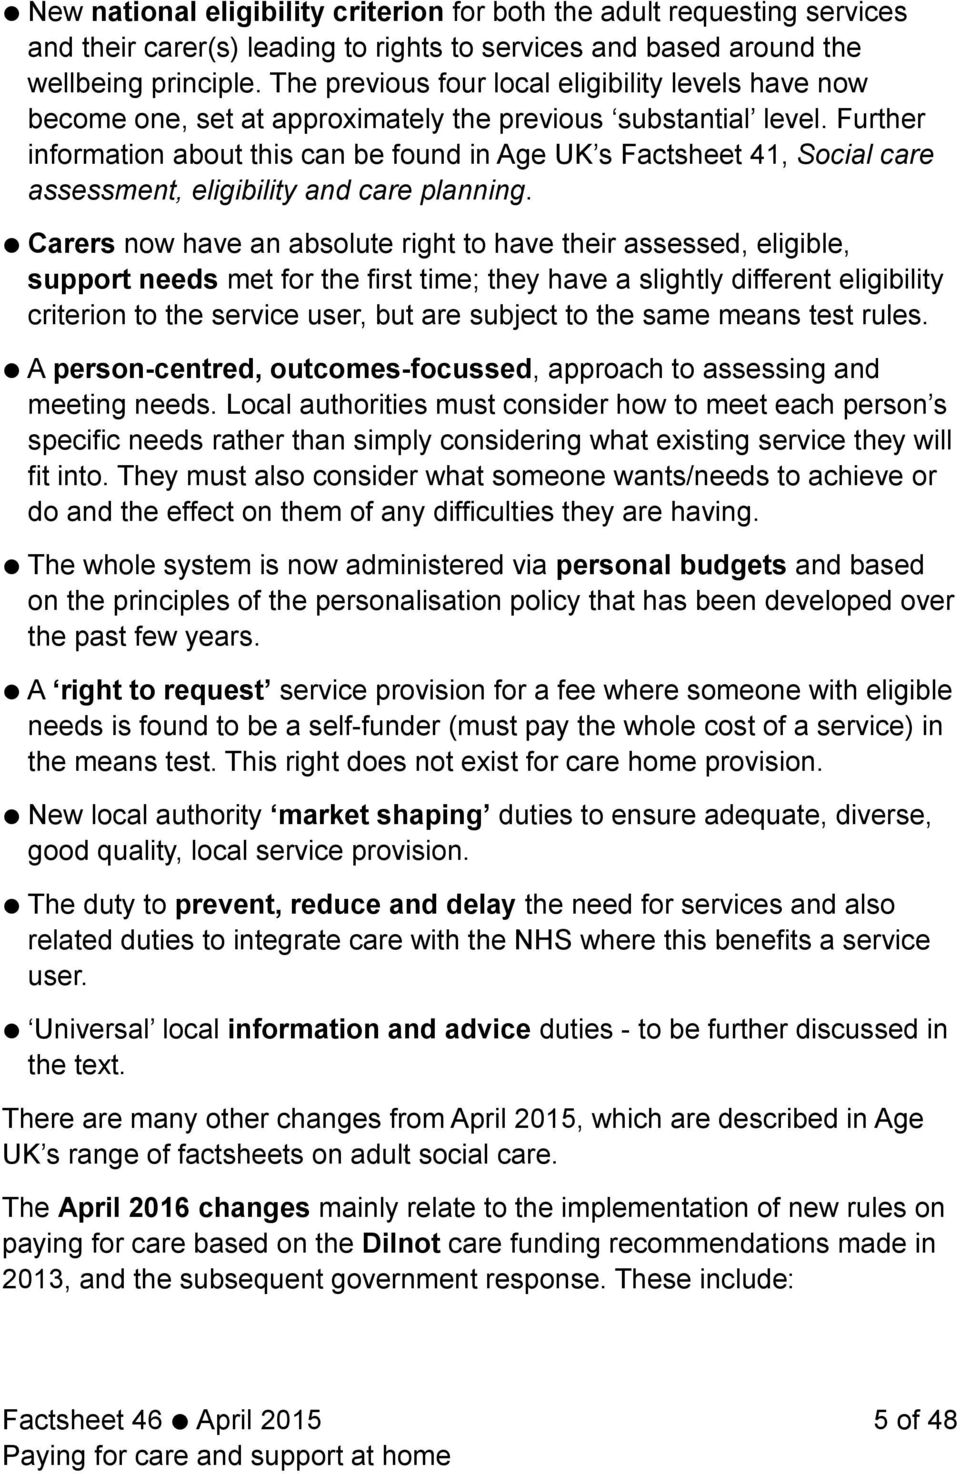 Further information about this can be found in Age UK s Factsheet 41, Social care assessment, eligibility and care planning.